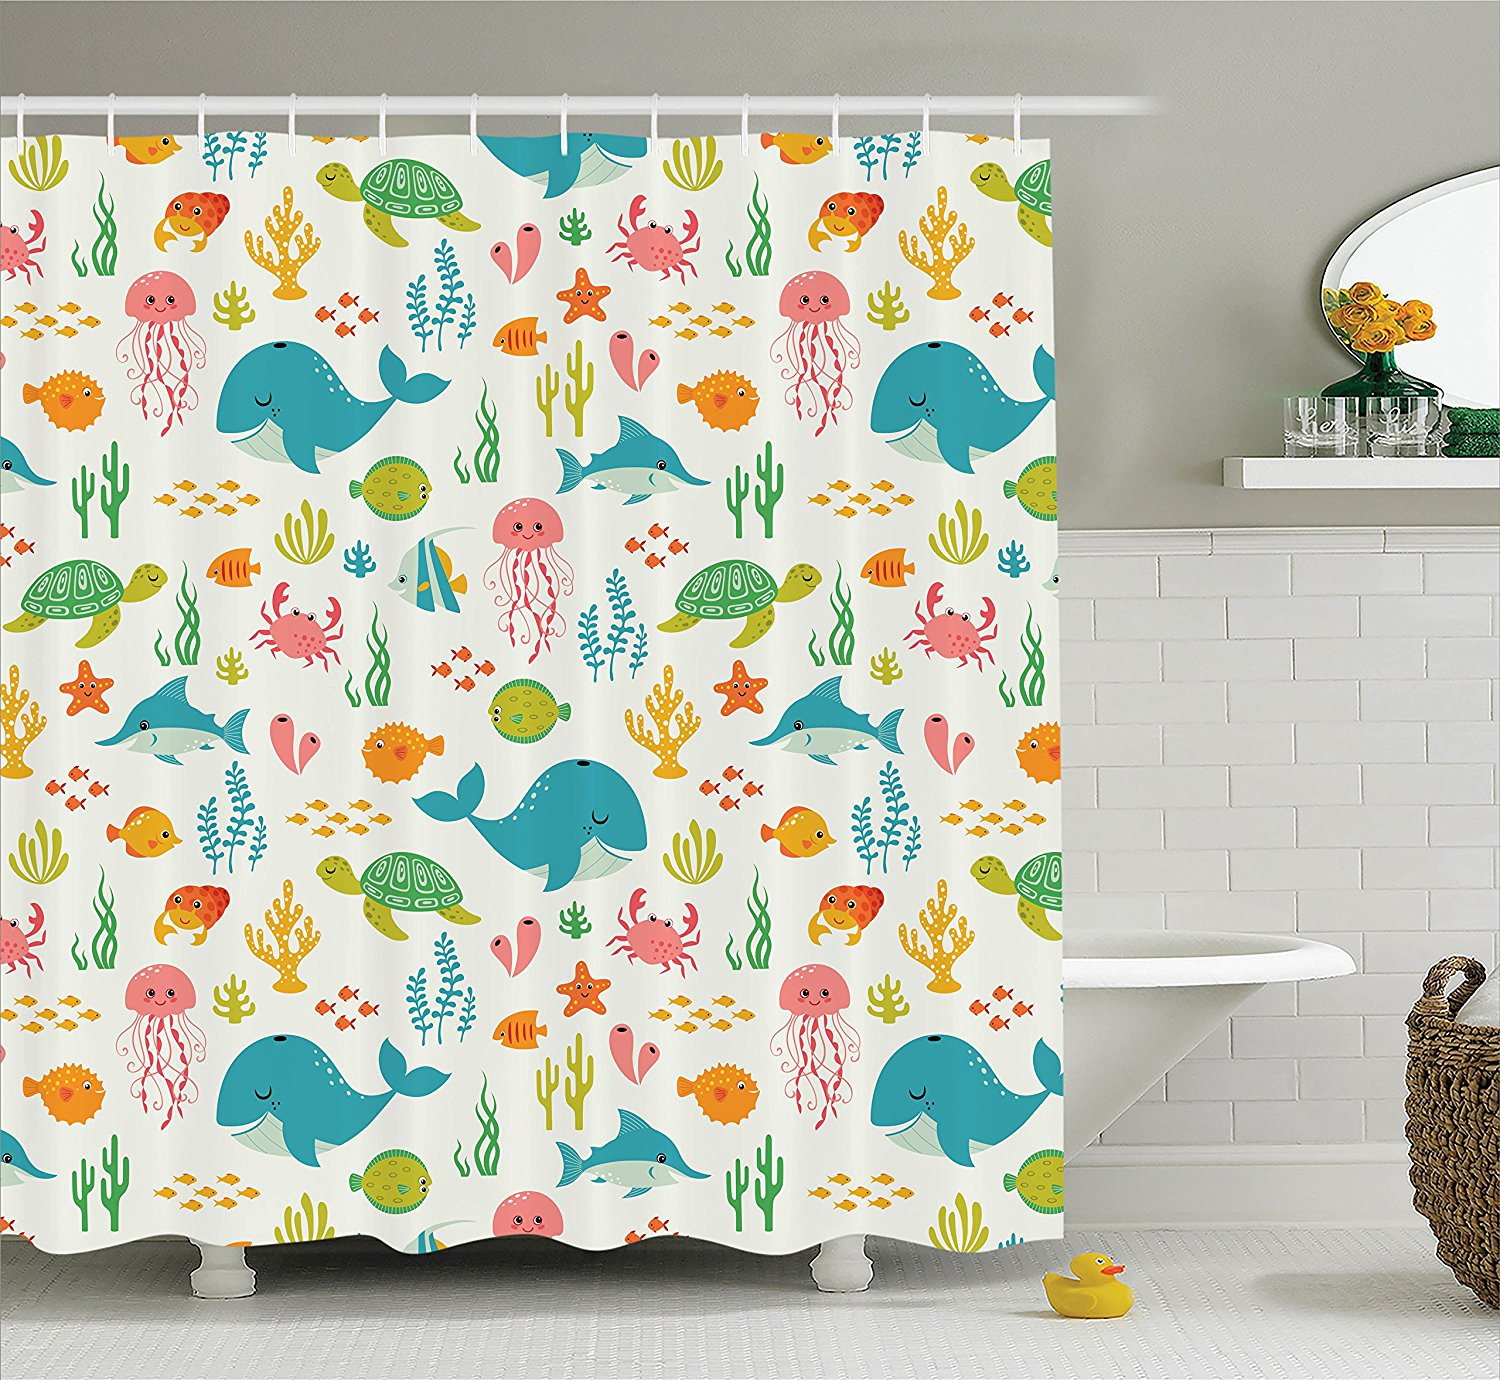 Memory Home Underwater Animals Aquatic Marine Life With Crabs Sea Stars  Fish Polyester Fabric Bathroom Shower